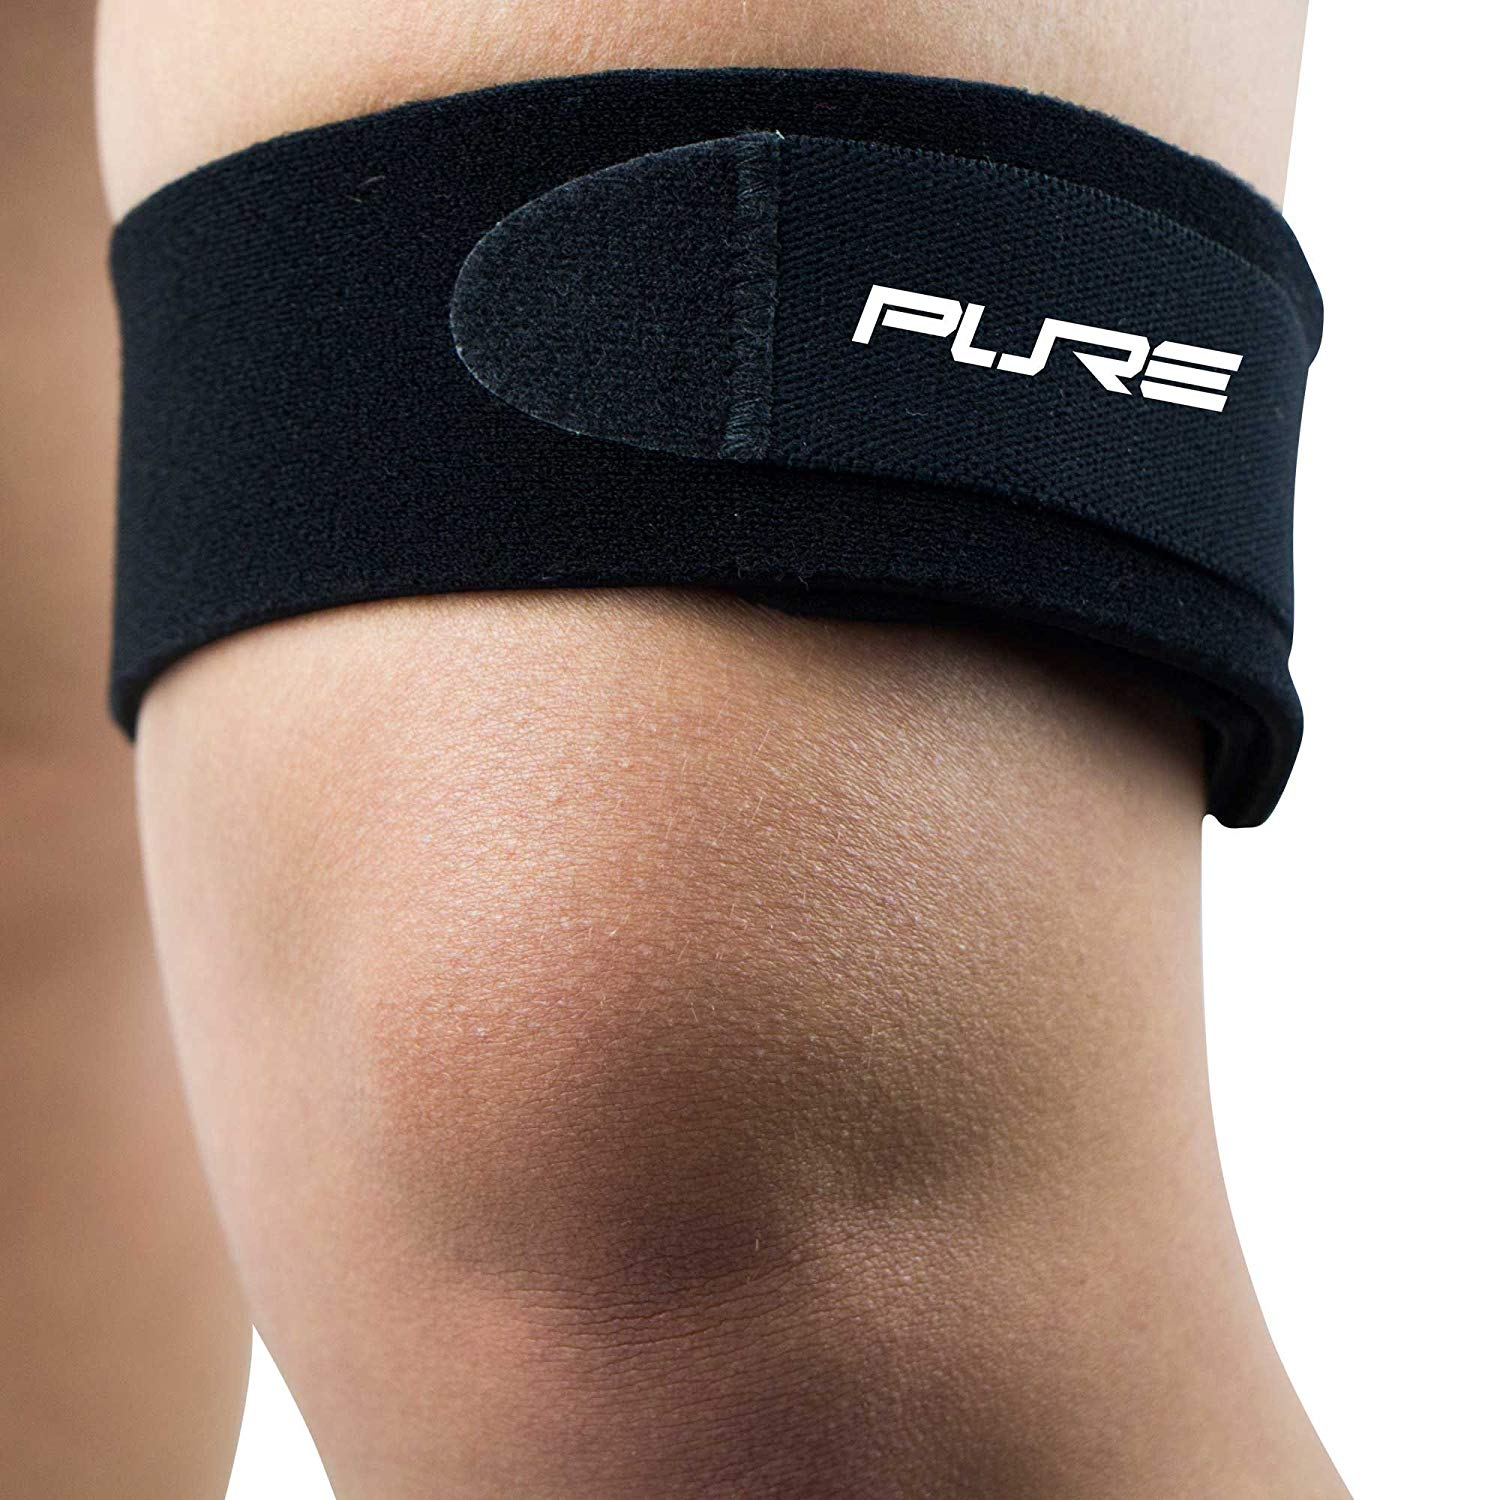 IT Band Strap for Knee